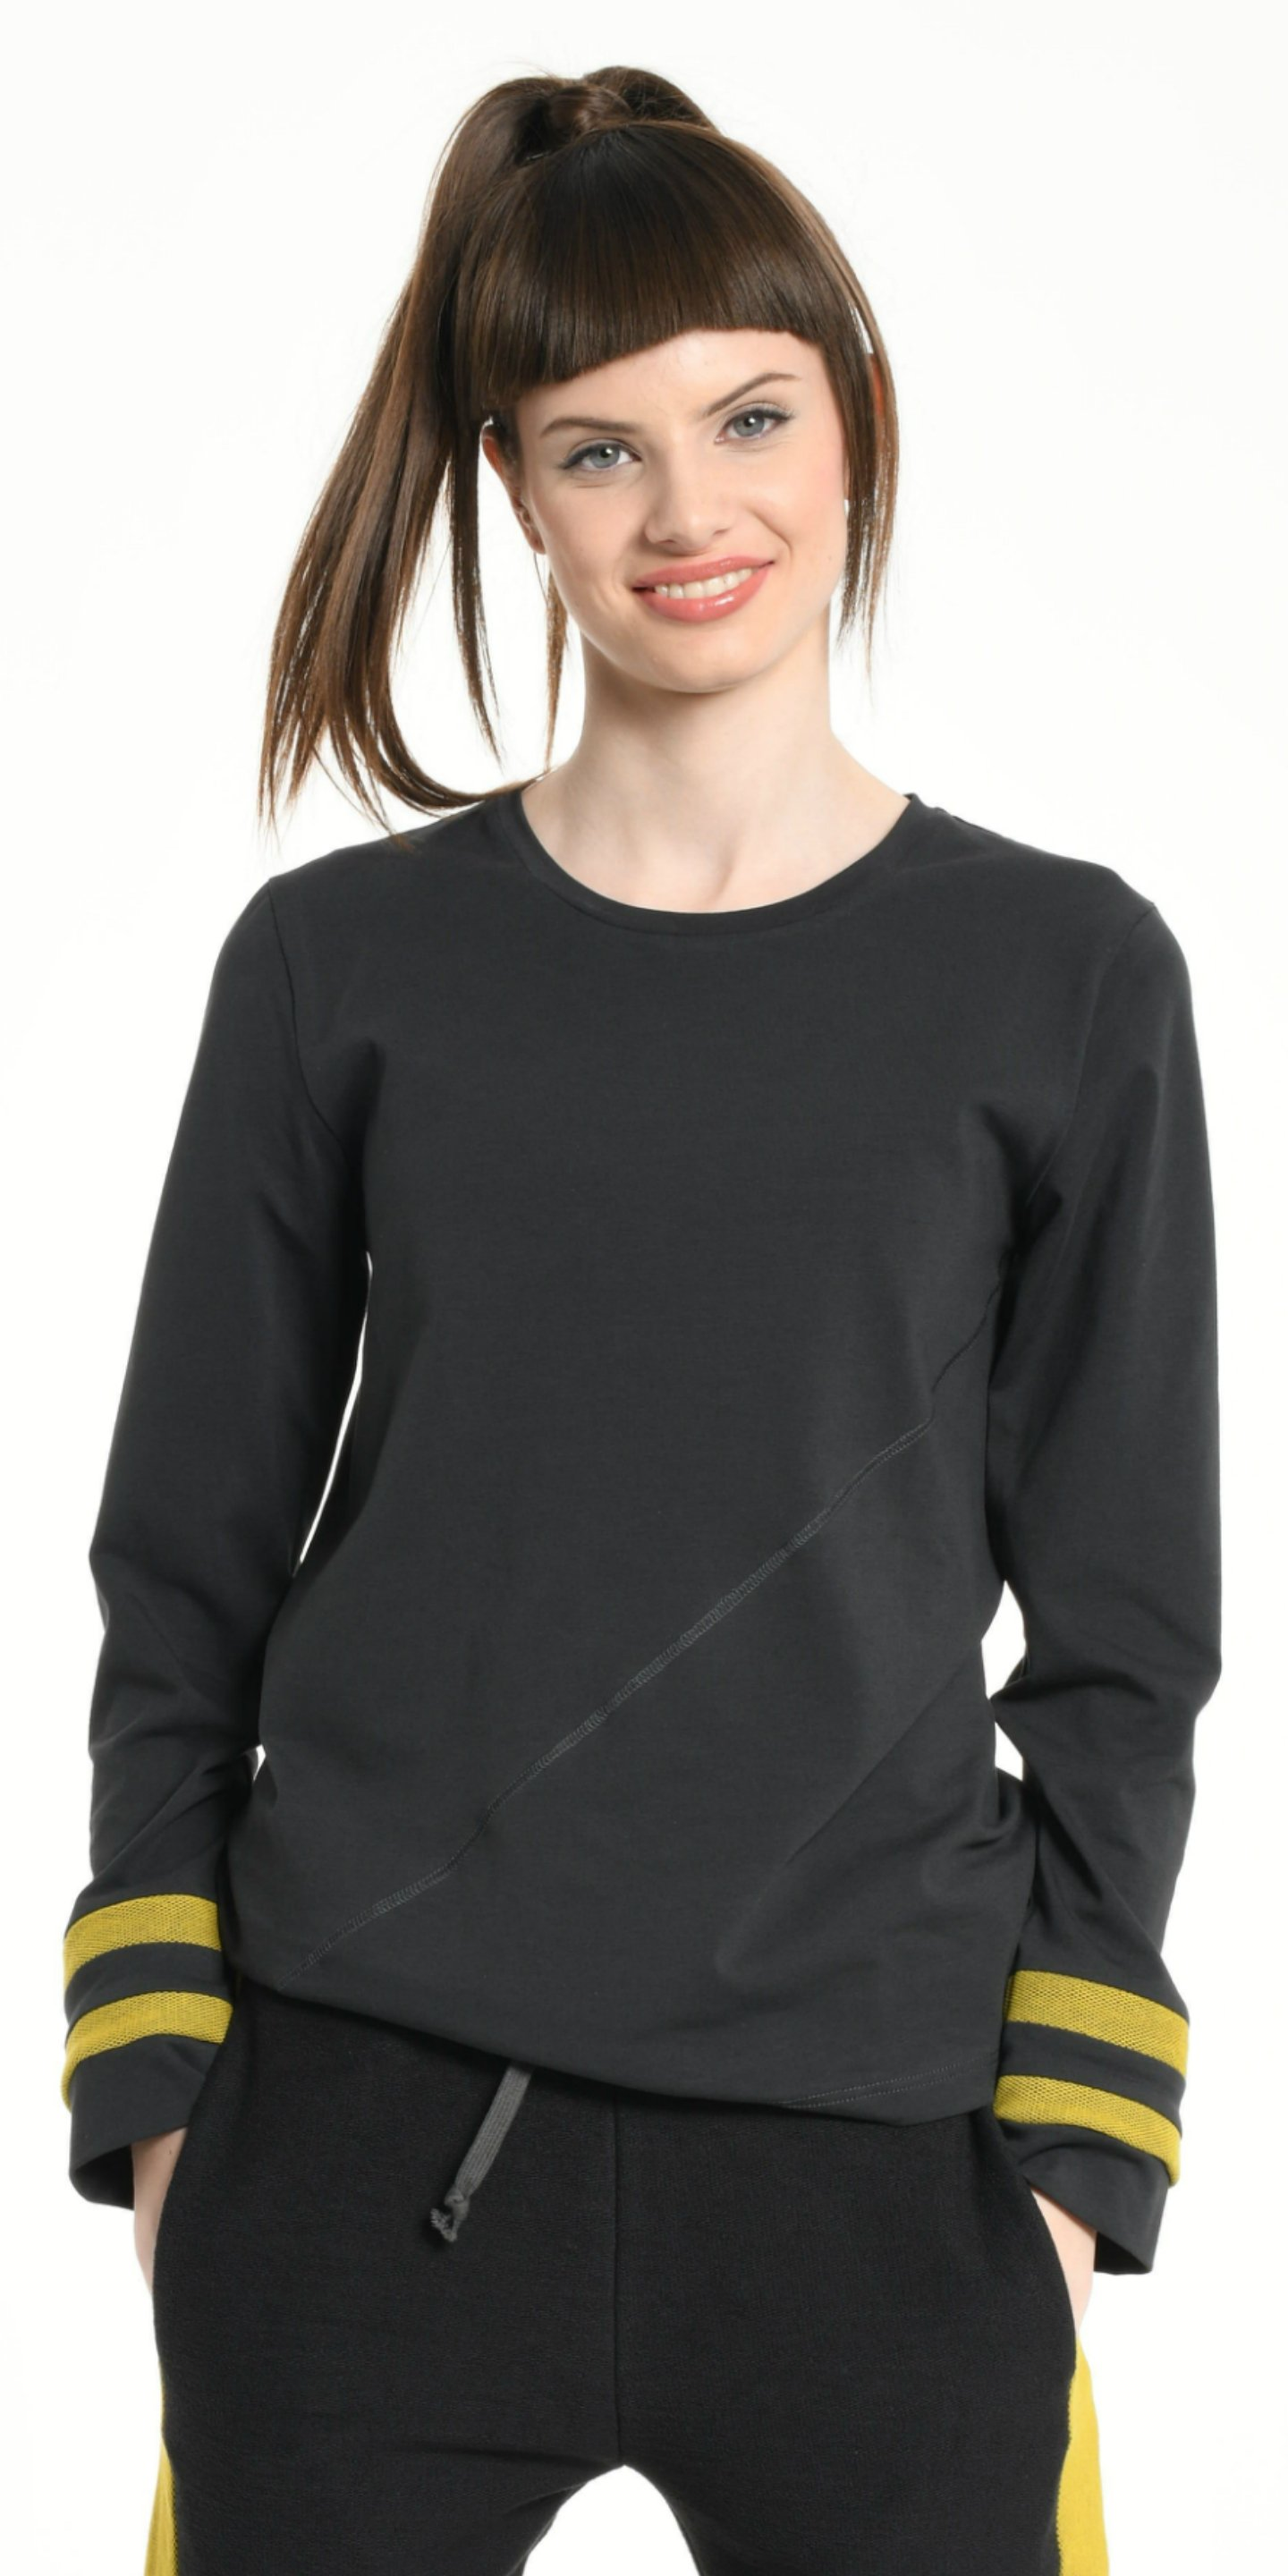 TEE SHIRT LONG SLEEVES DARK GREY WITH YELLOW STRIPS from BEARD & FRINGE